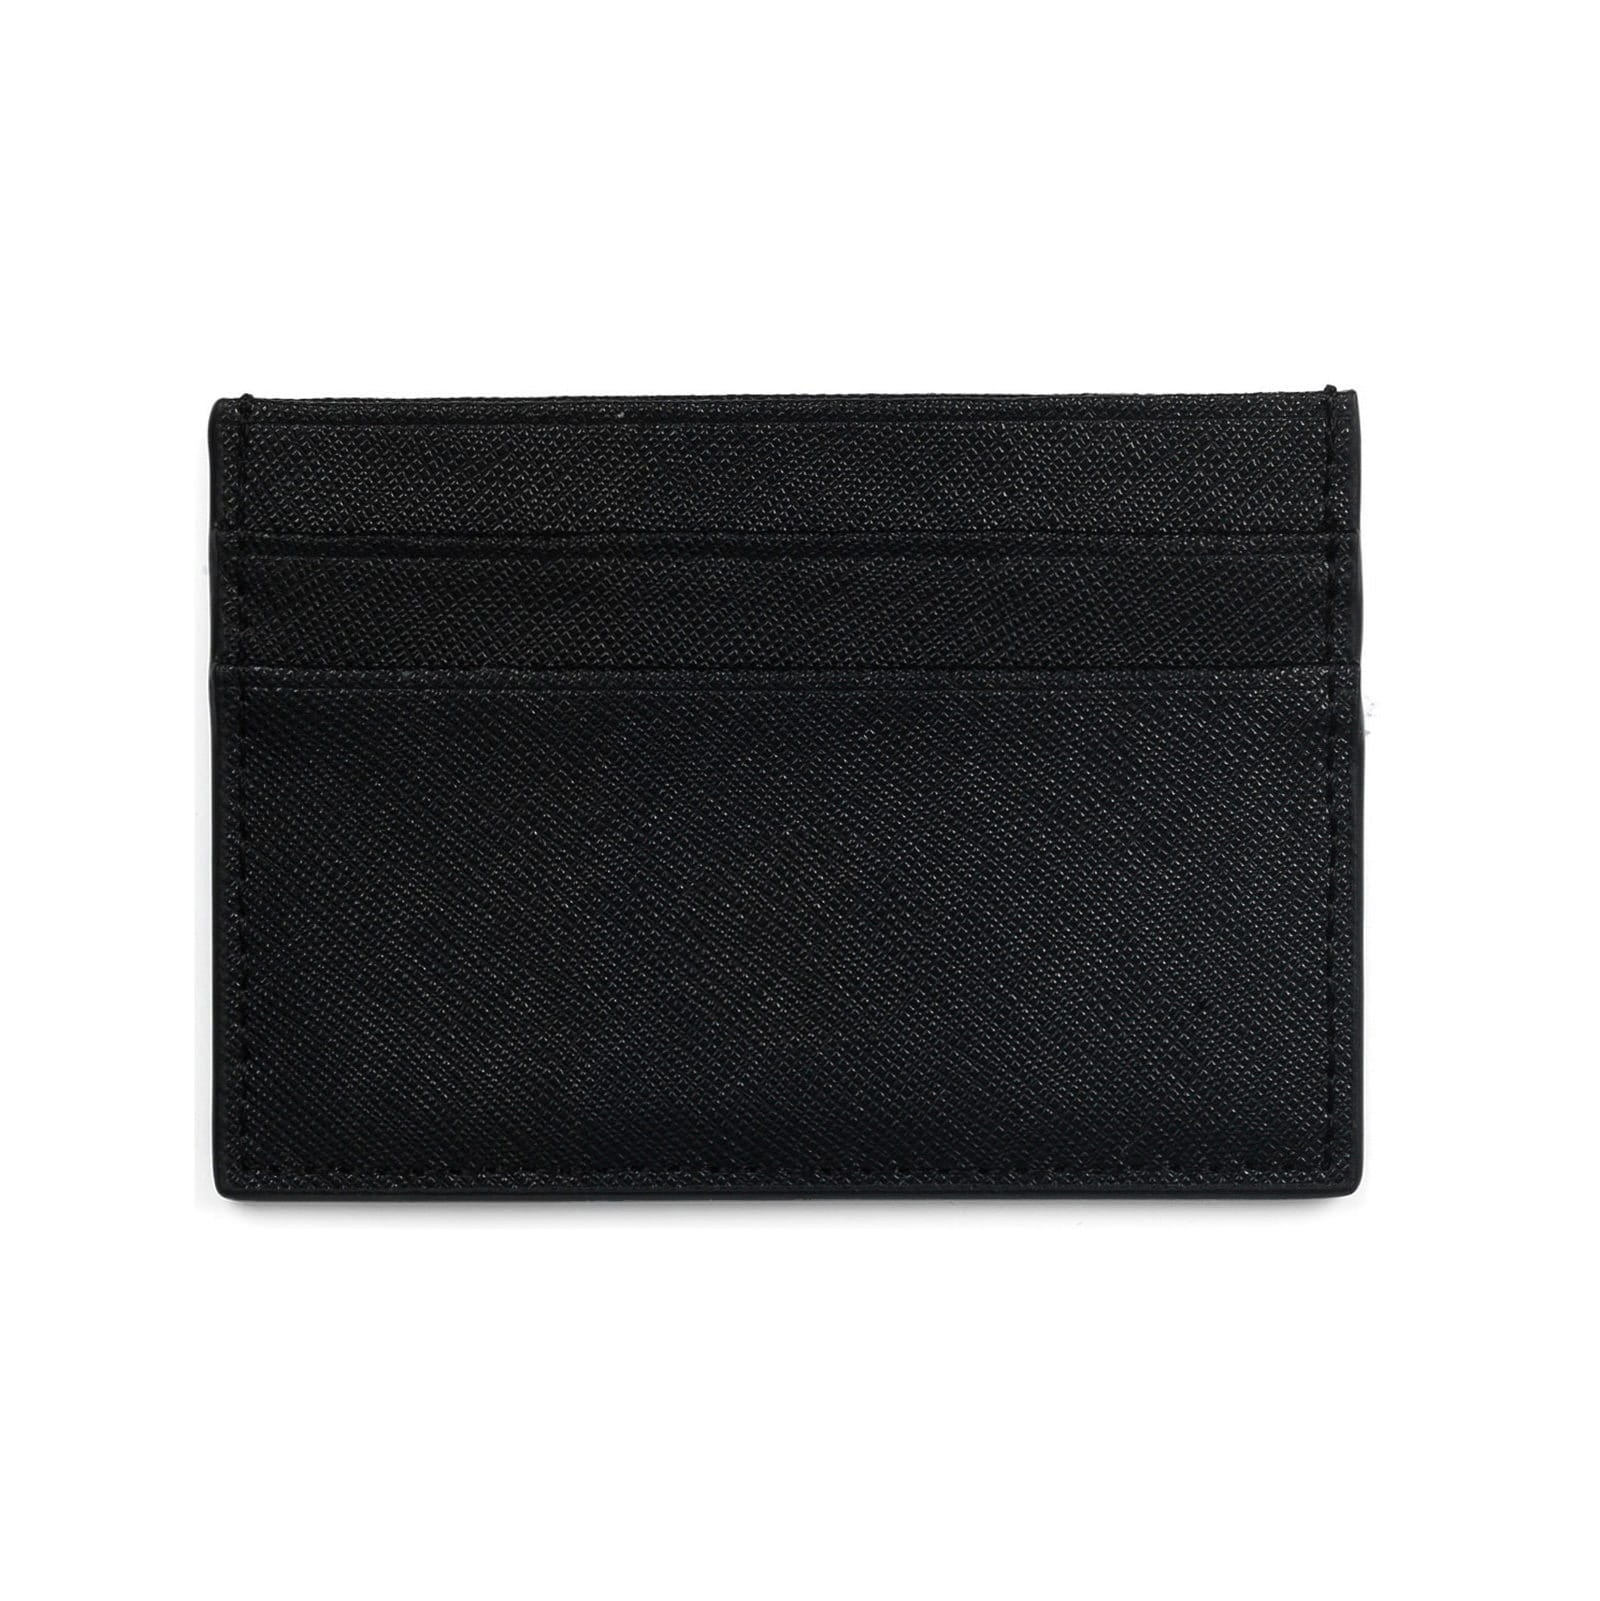 Blank Personalised Black Saffiano Leather Card Holder